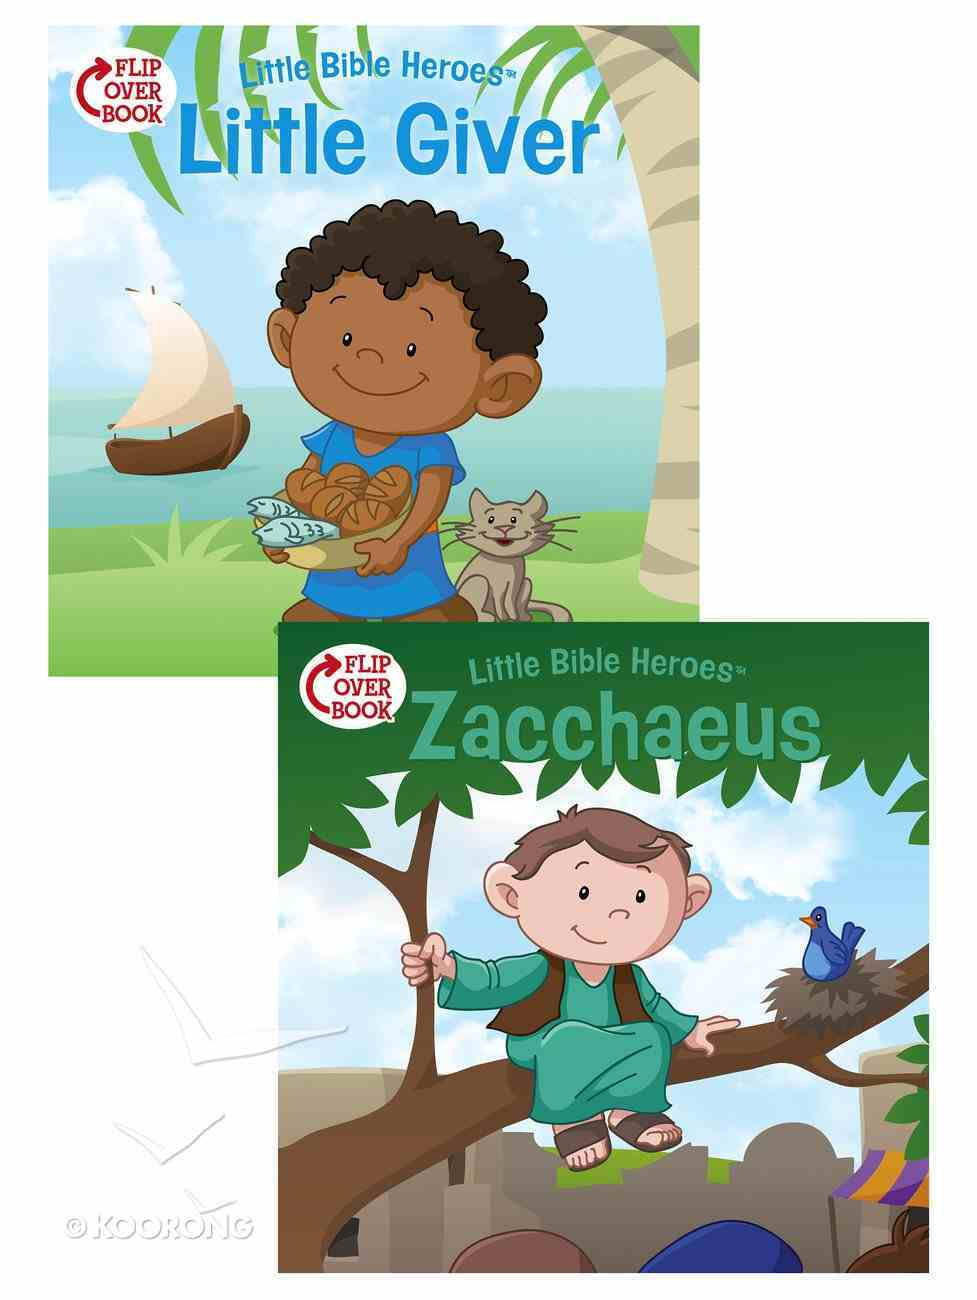 The Little Giver/Zacchaeus Flip-Over Book (Little Bible Heroes Series) Paperback